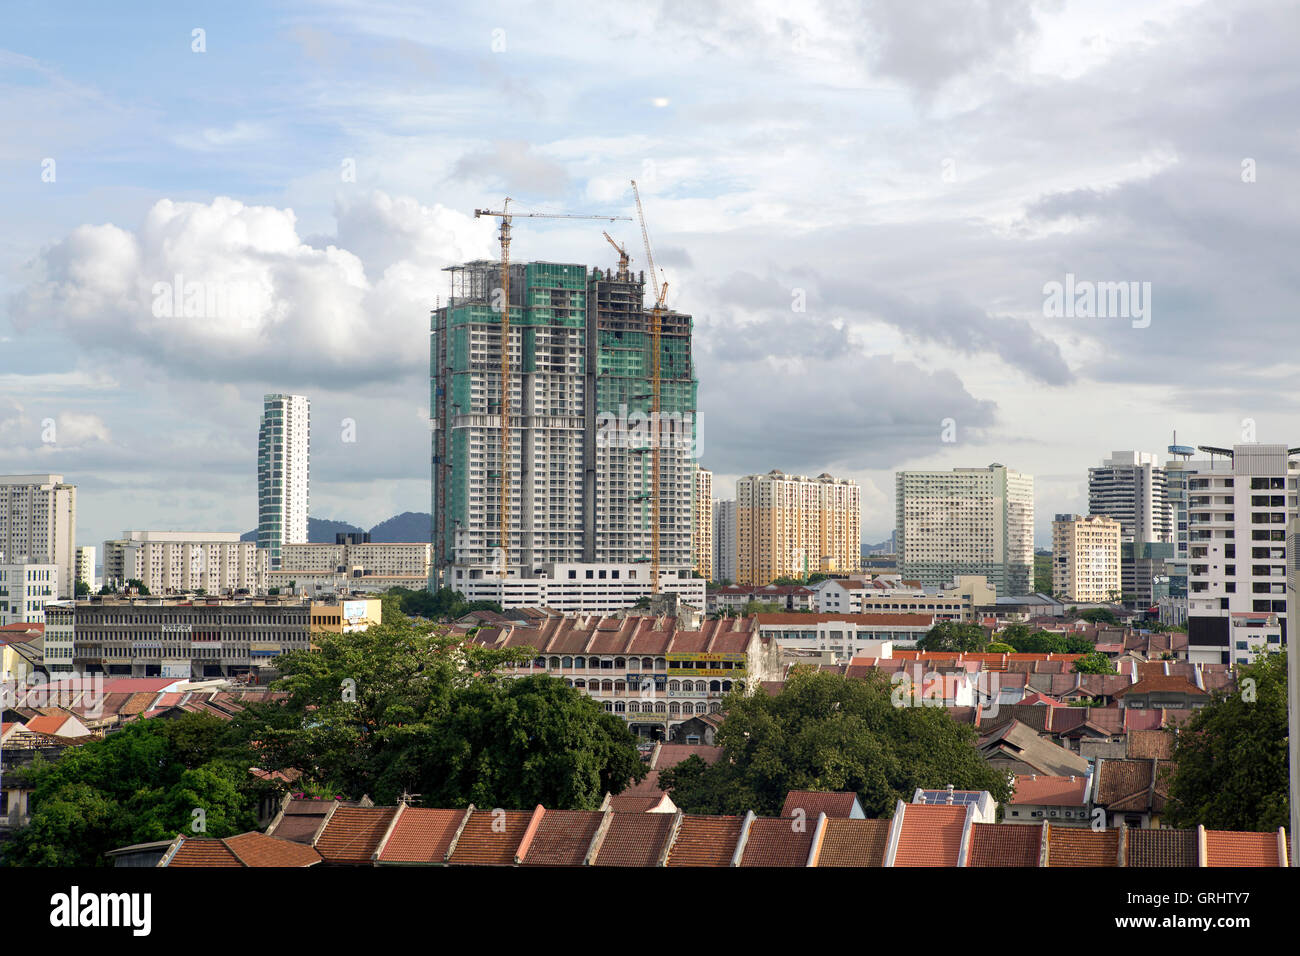 New Developments in Georgetown Penang a changing city skyline - Stock Image